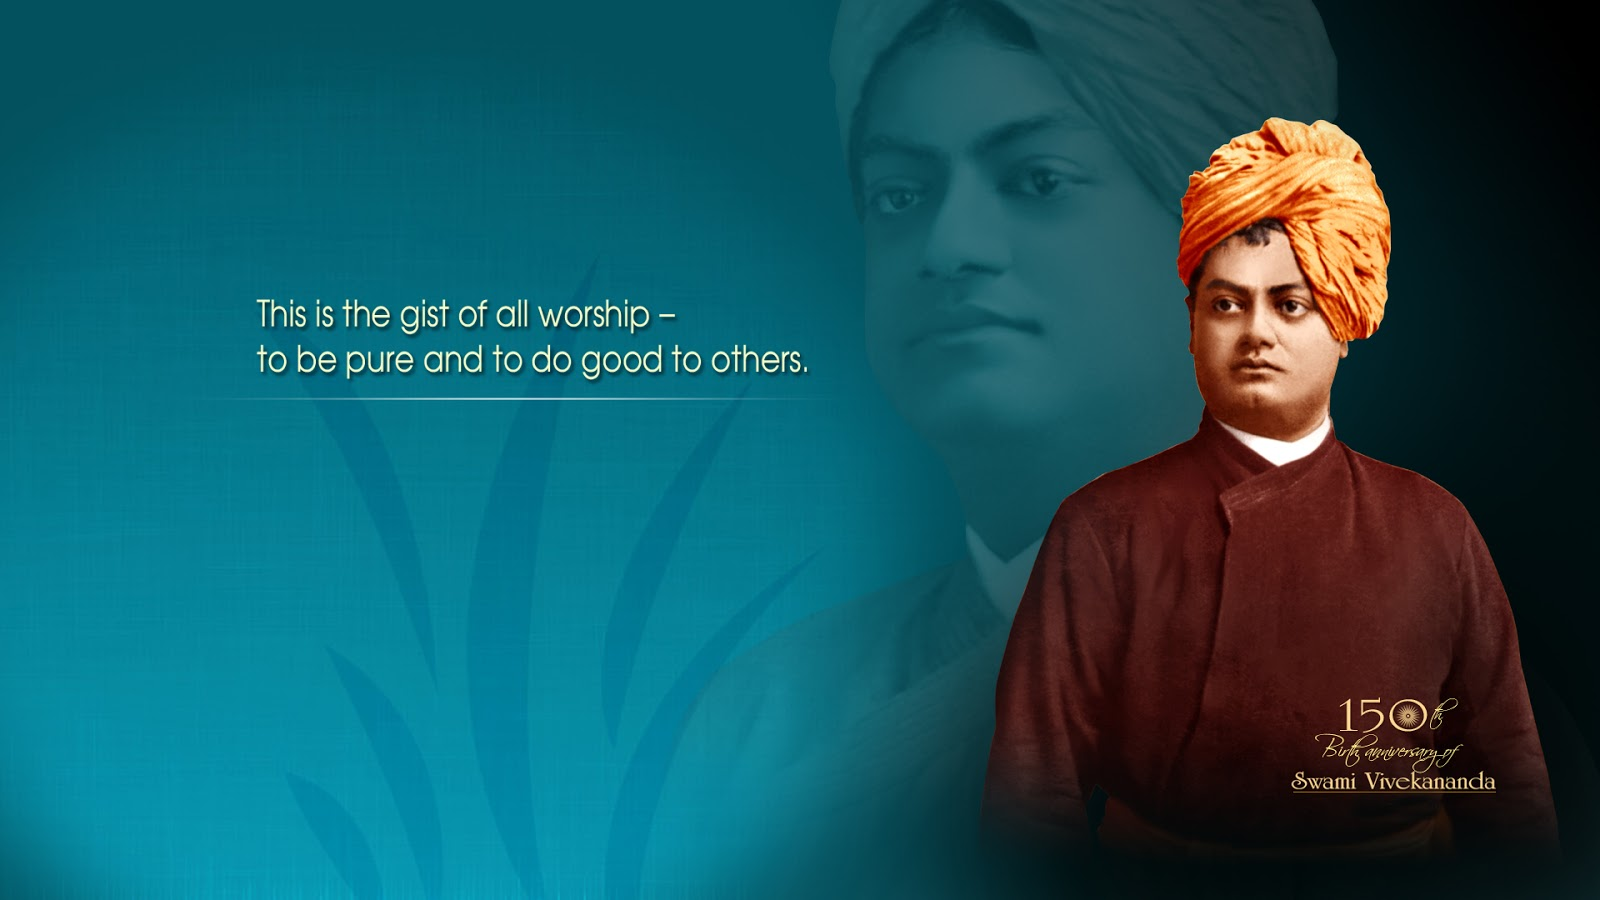 Telugu Funny Quotes Wallpapers Swami Vivekananda High Resolution Best Size Hd Wallpapers